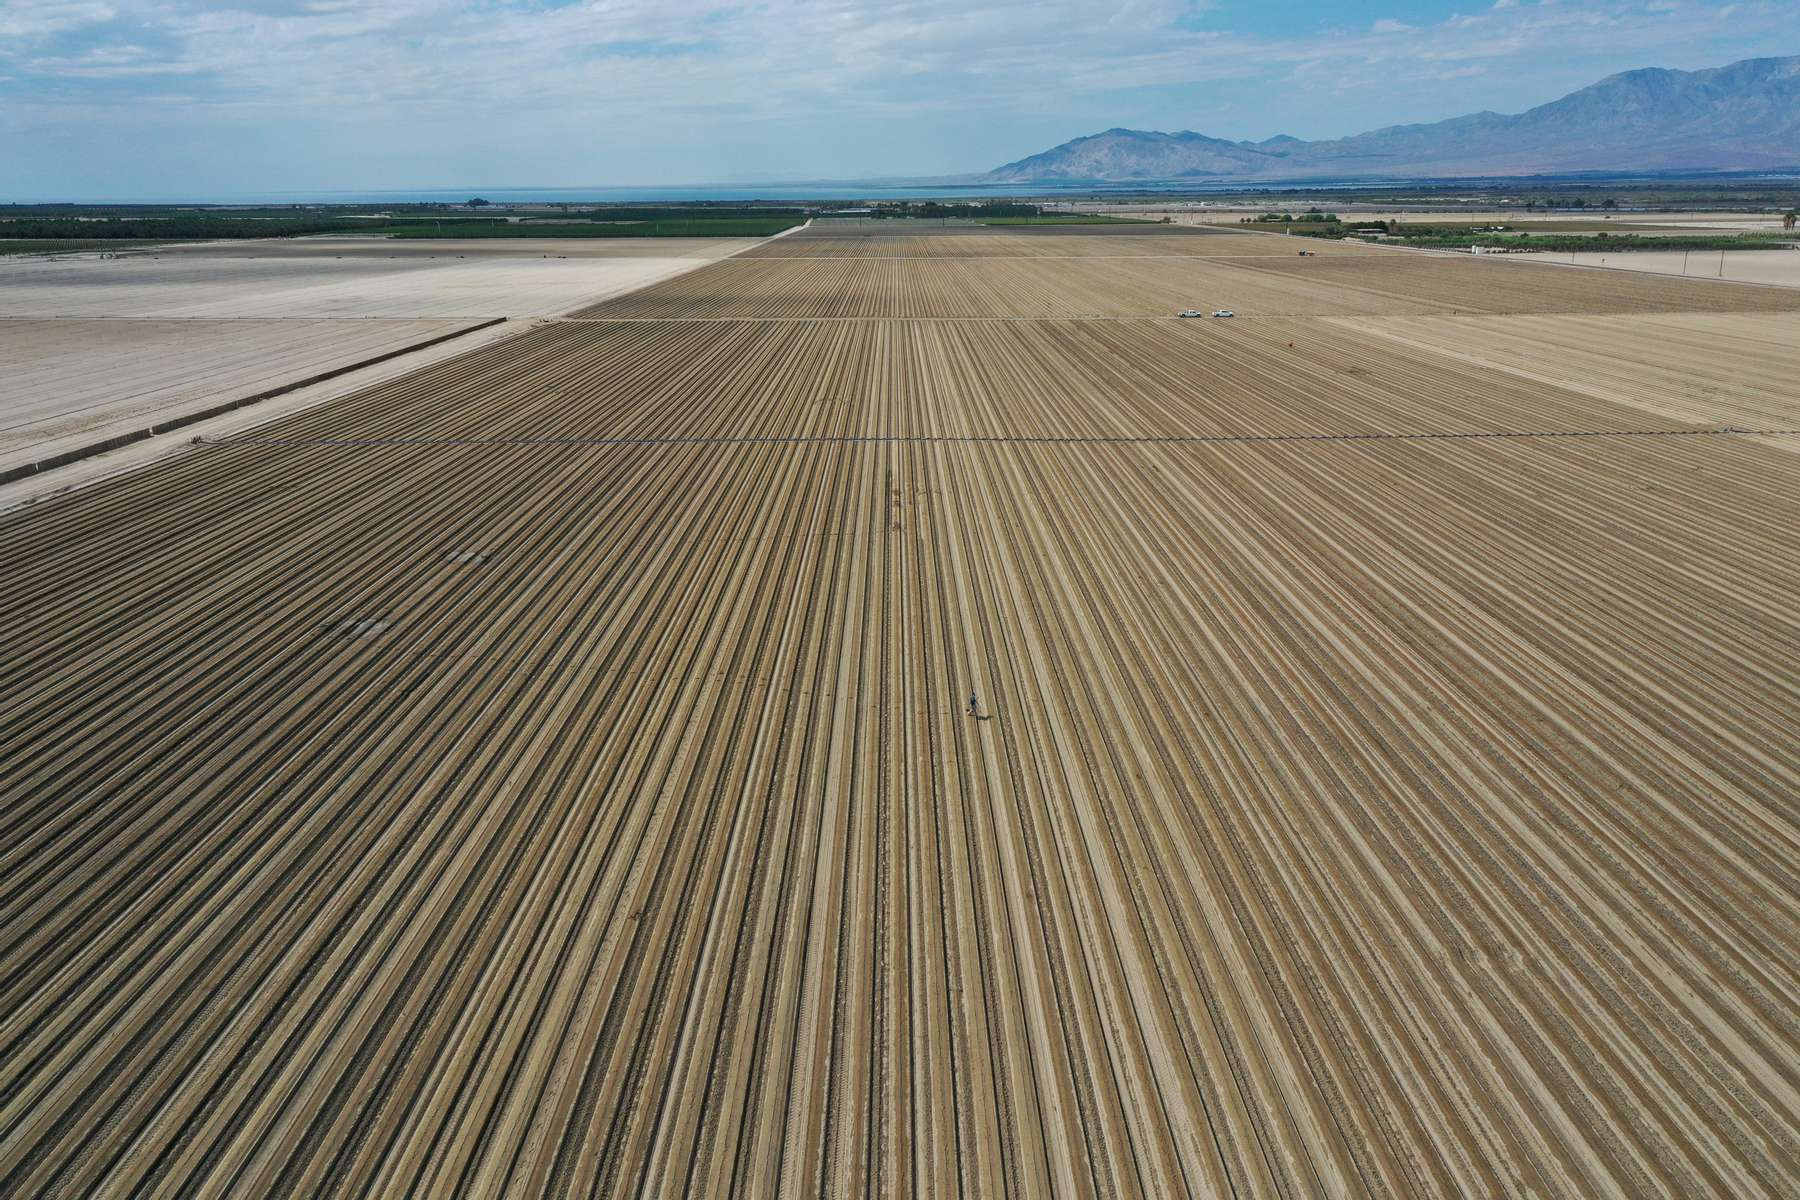 An aerial view shows agricultural fields as California faces its worst drought since 1977, in Mecca, California, U.S., July 4, 2021. Picture taken with a drone July 4, 2021.